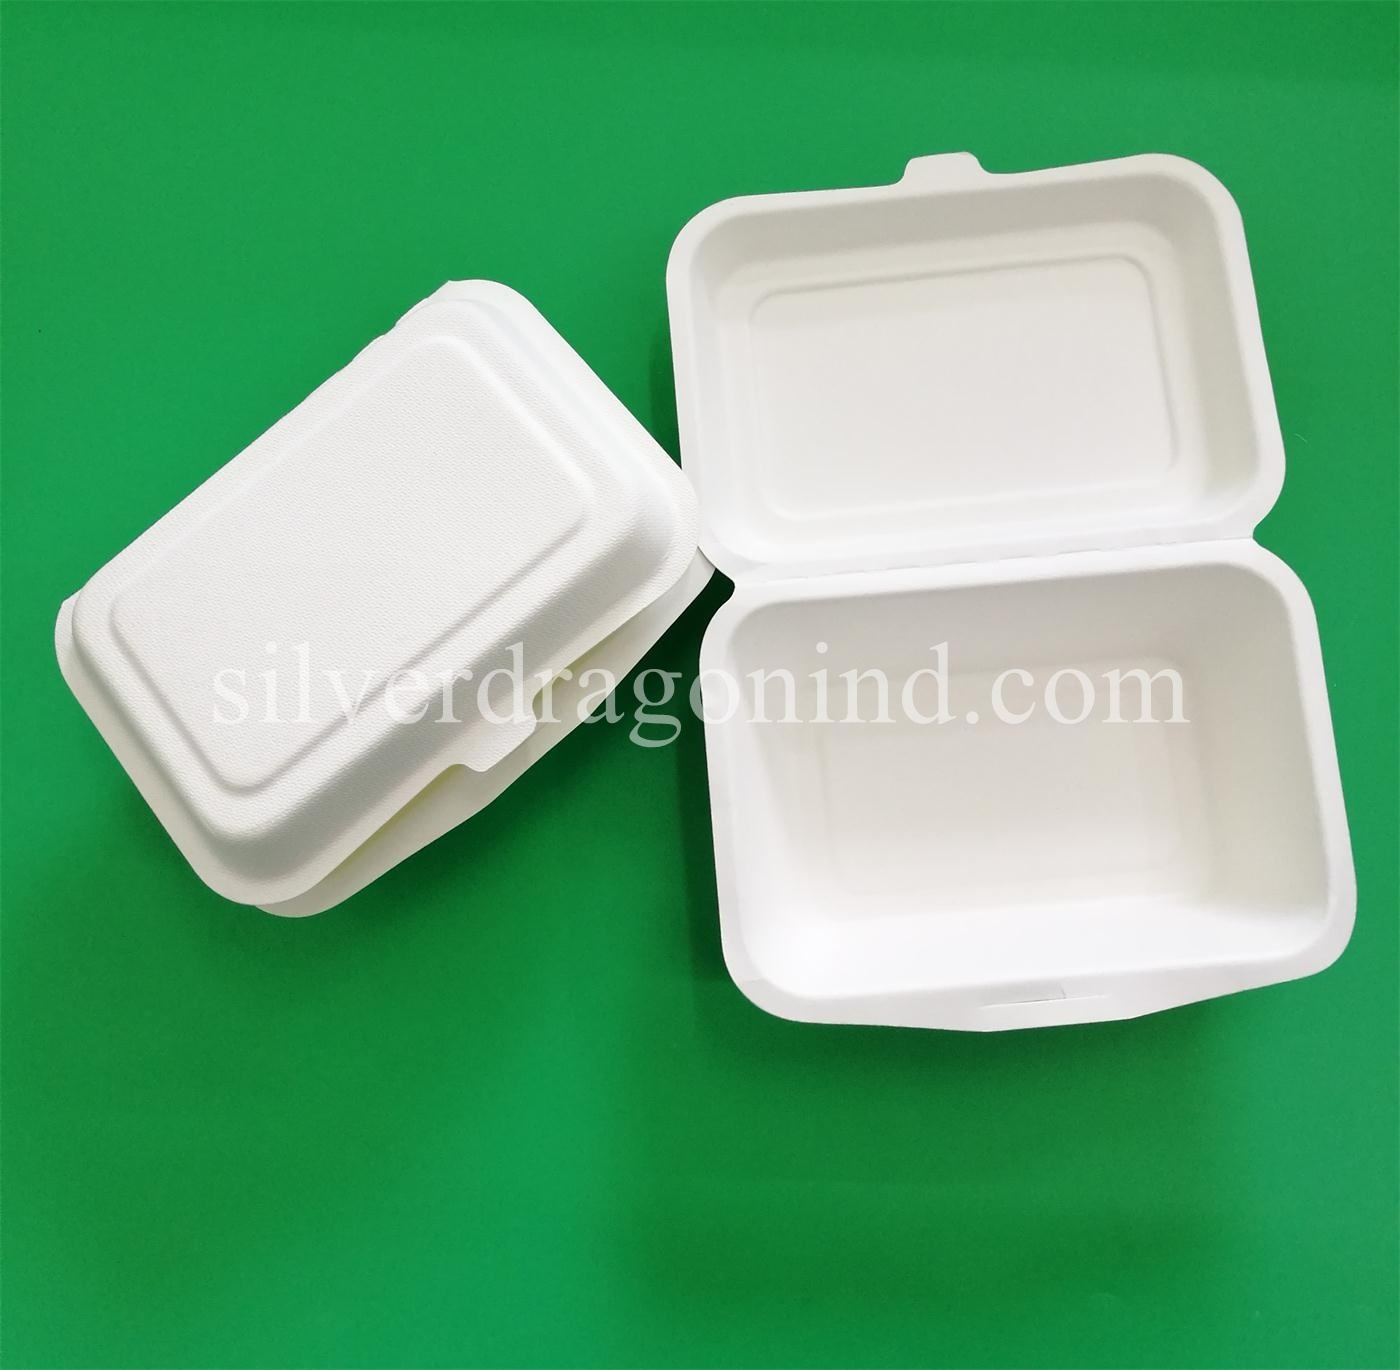 Compostable Biodegradable Sugarcane Bagasse Paper Lunch Box 600ml, Eco-Friendly